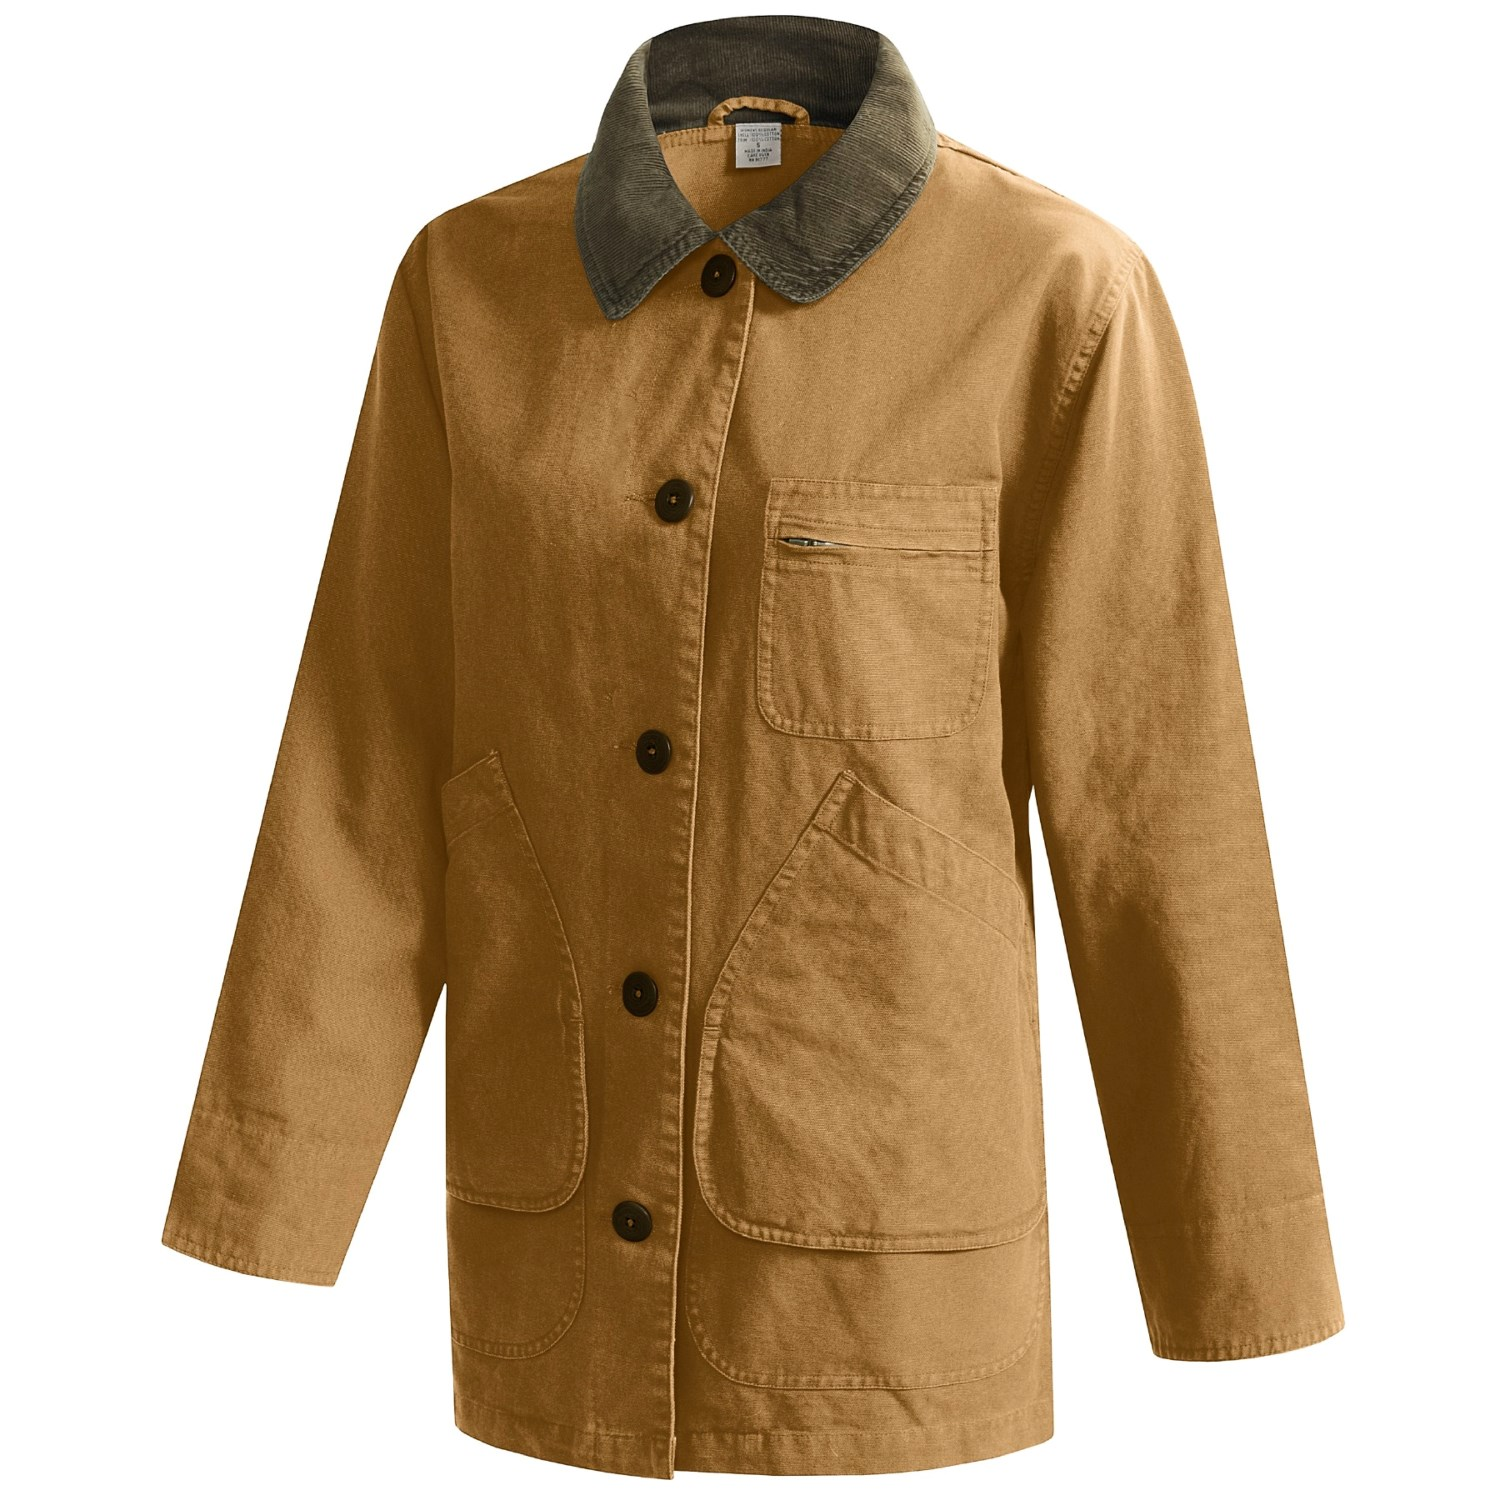 Cotton Canvas Barn Coat (For Women) 41855 - Save 74%